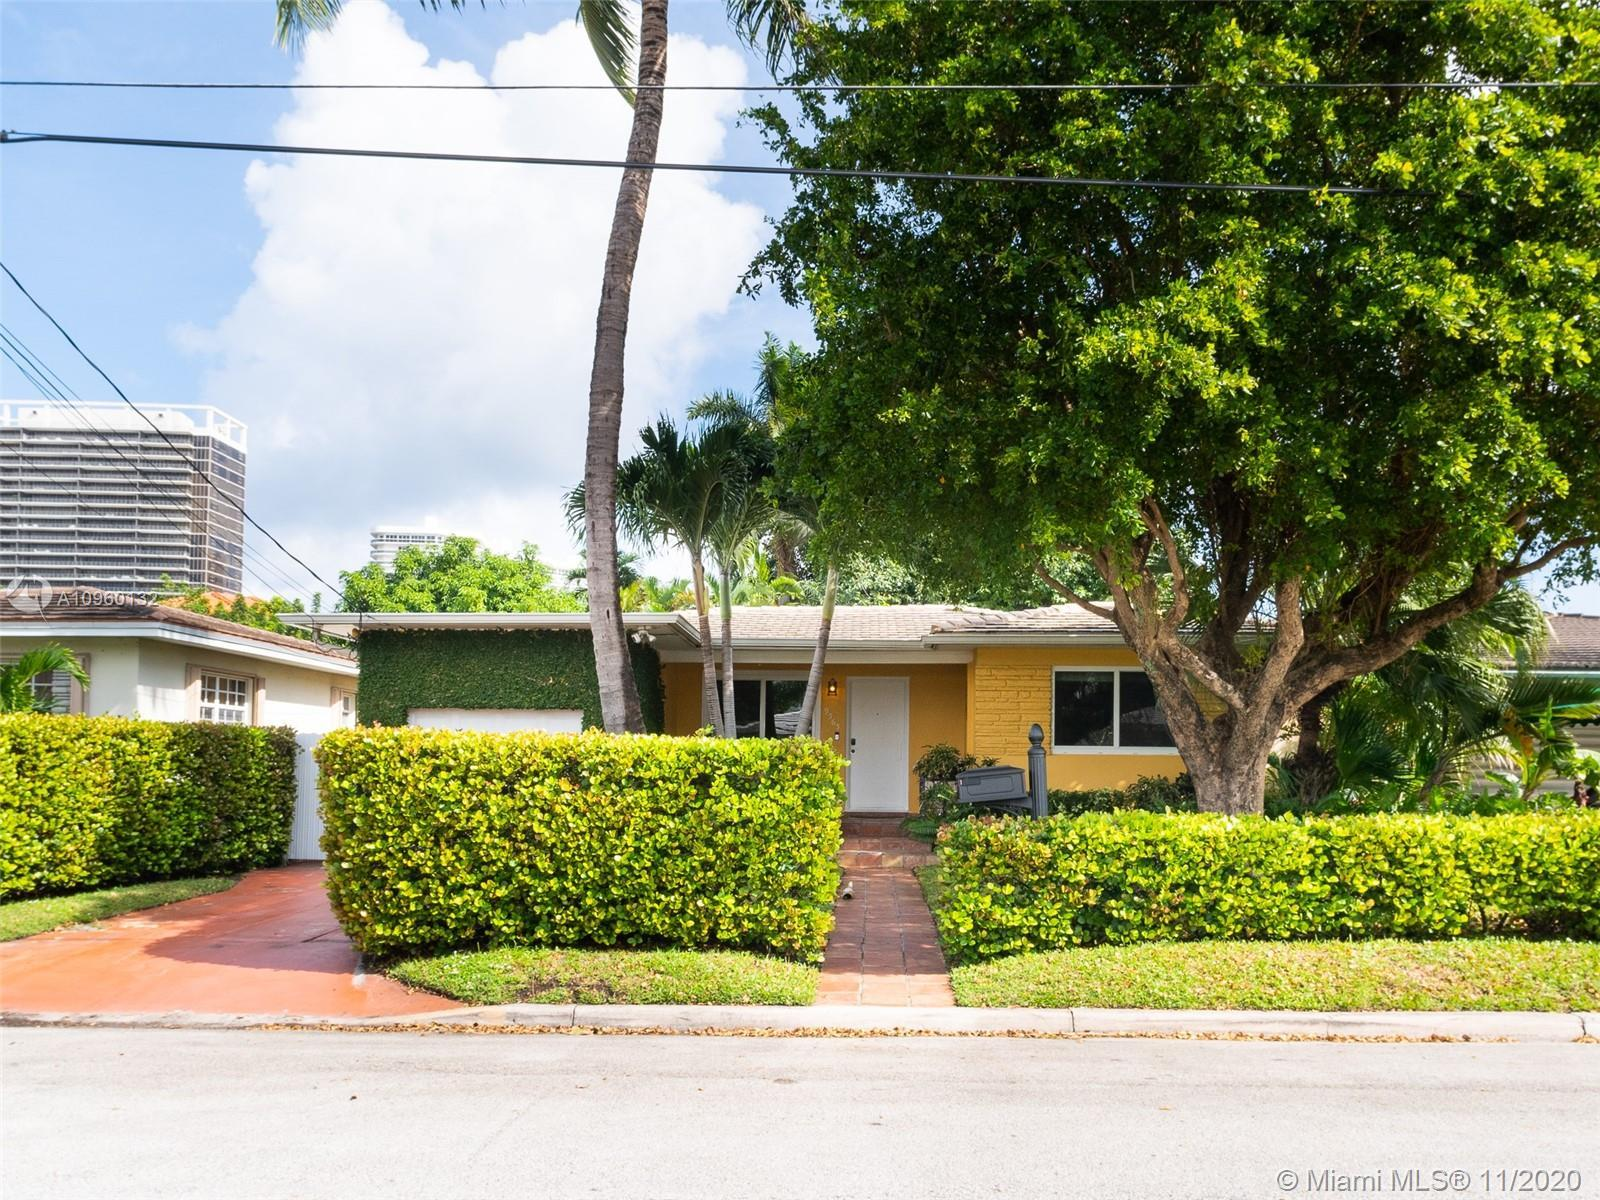 Great updated home on the most desirable block in Surfside (deadend street looking at the bal harbou